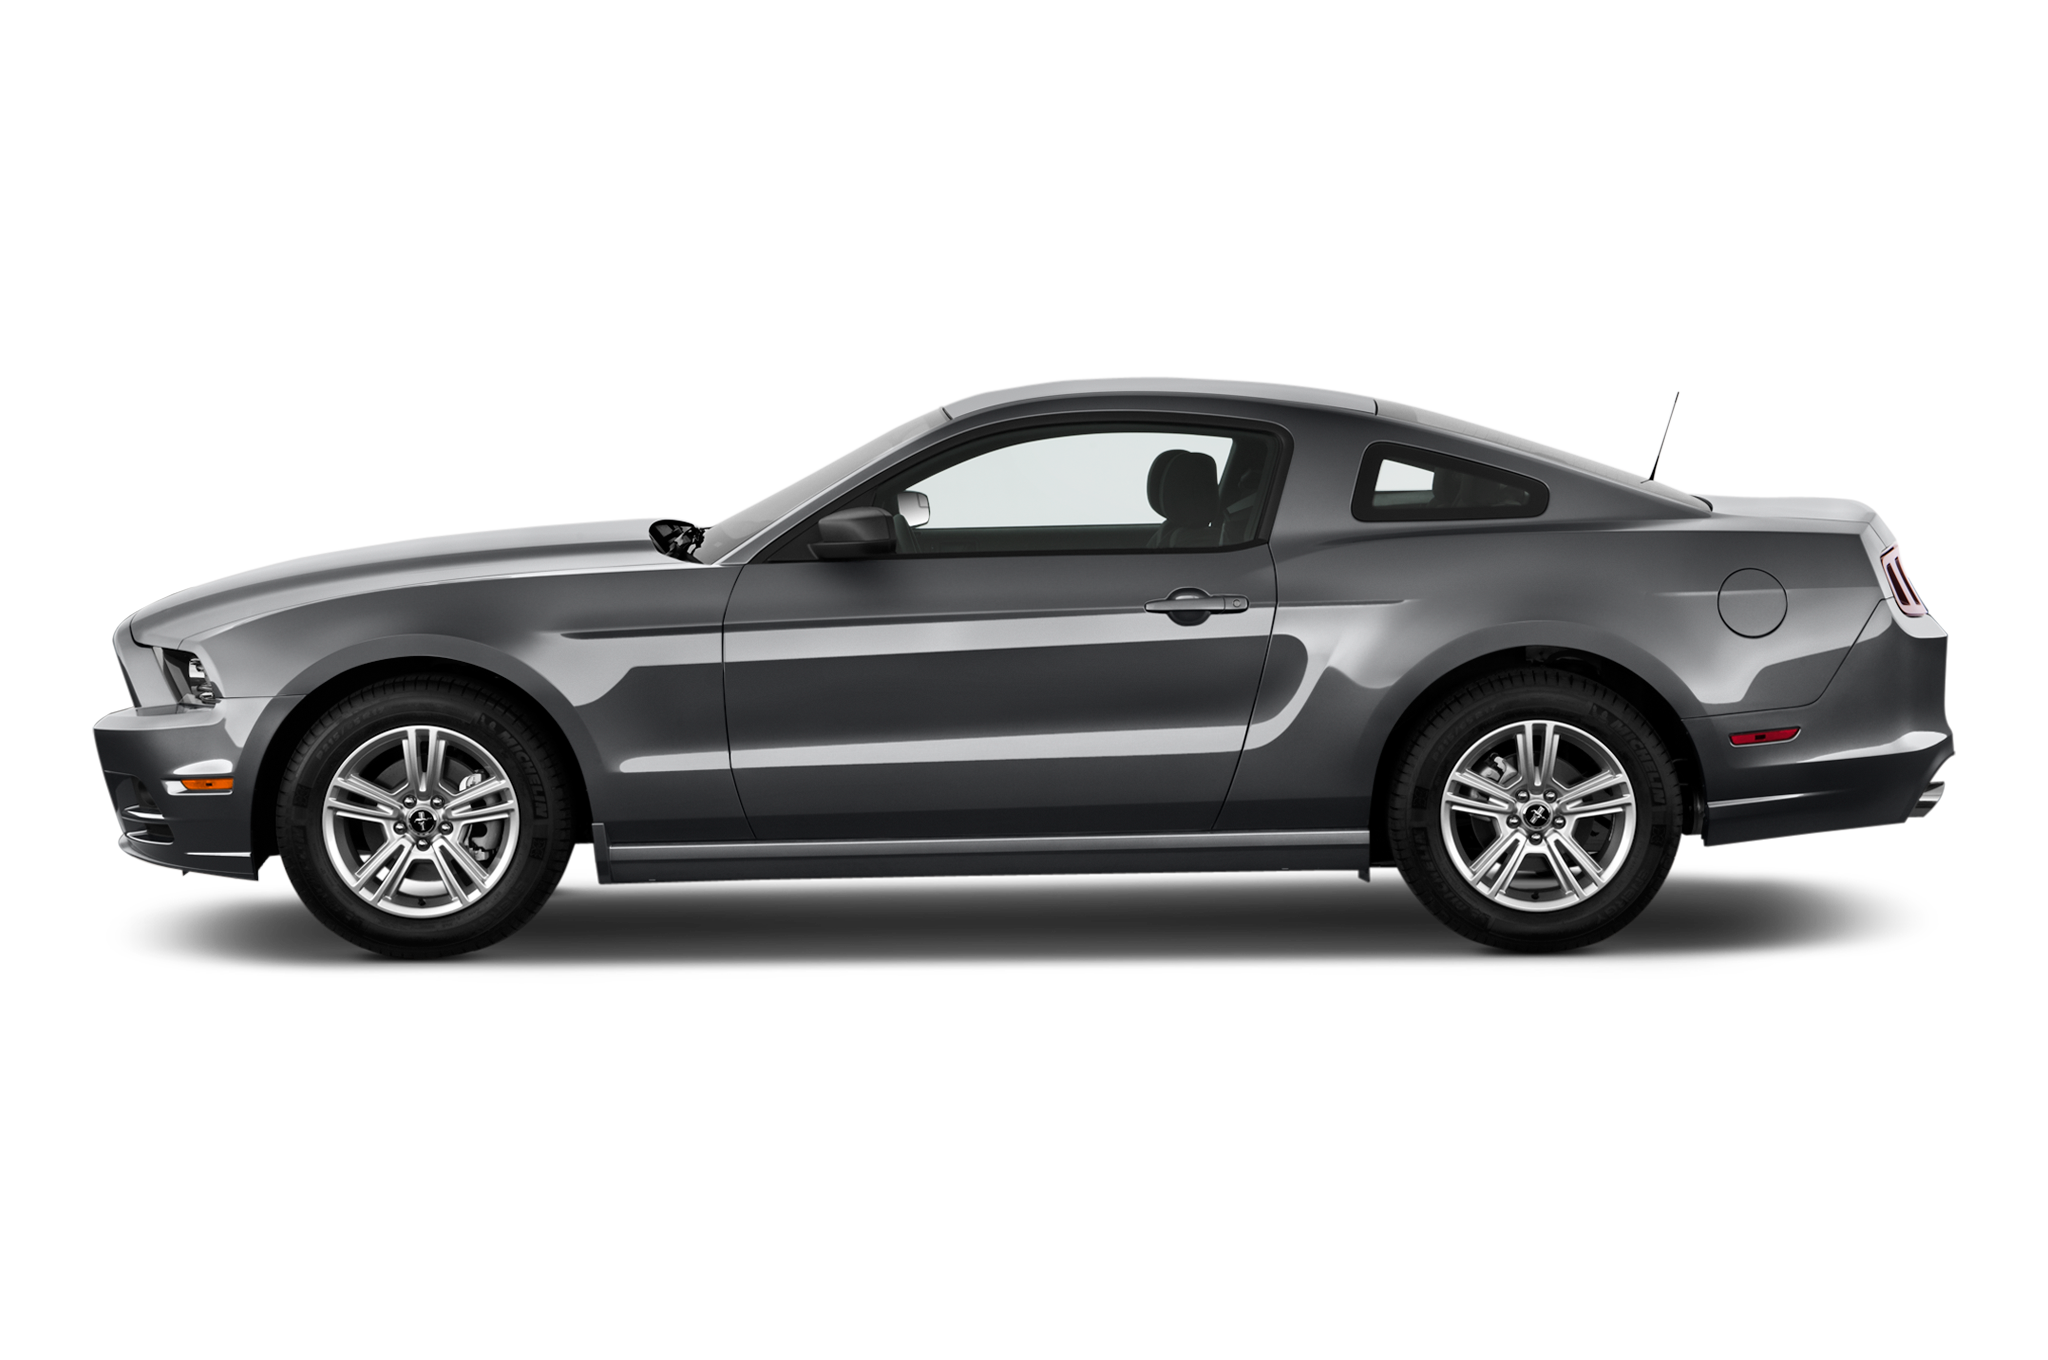 2005-2009 Mustang Gets Shelby Wide Body Kit